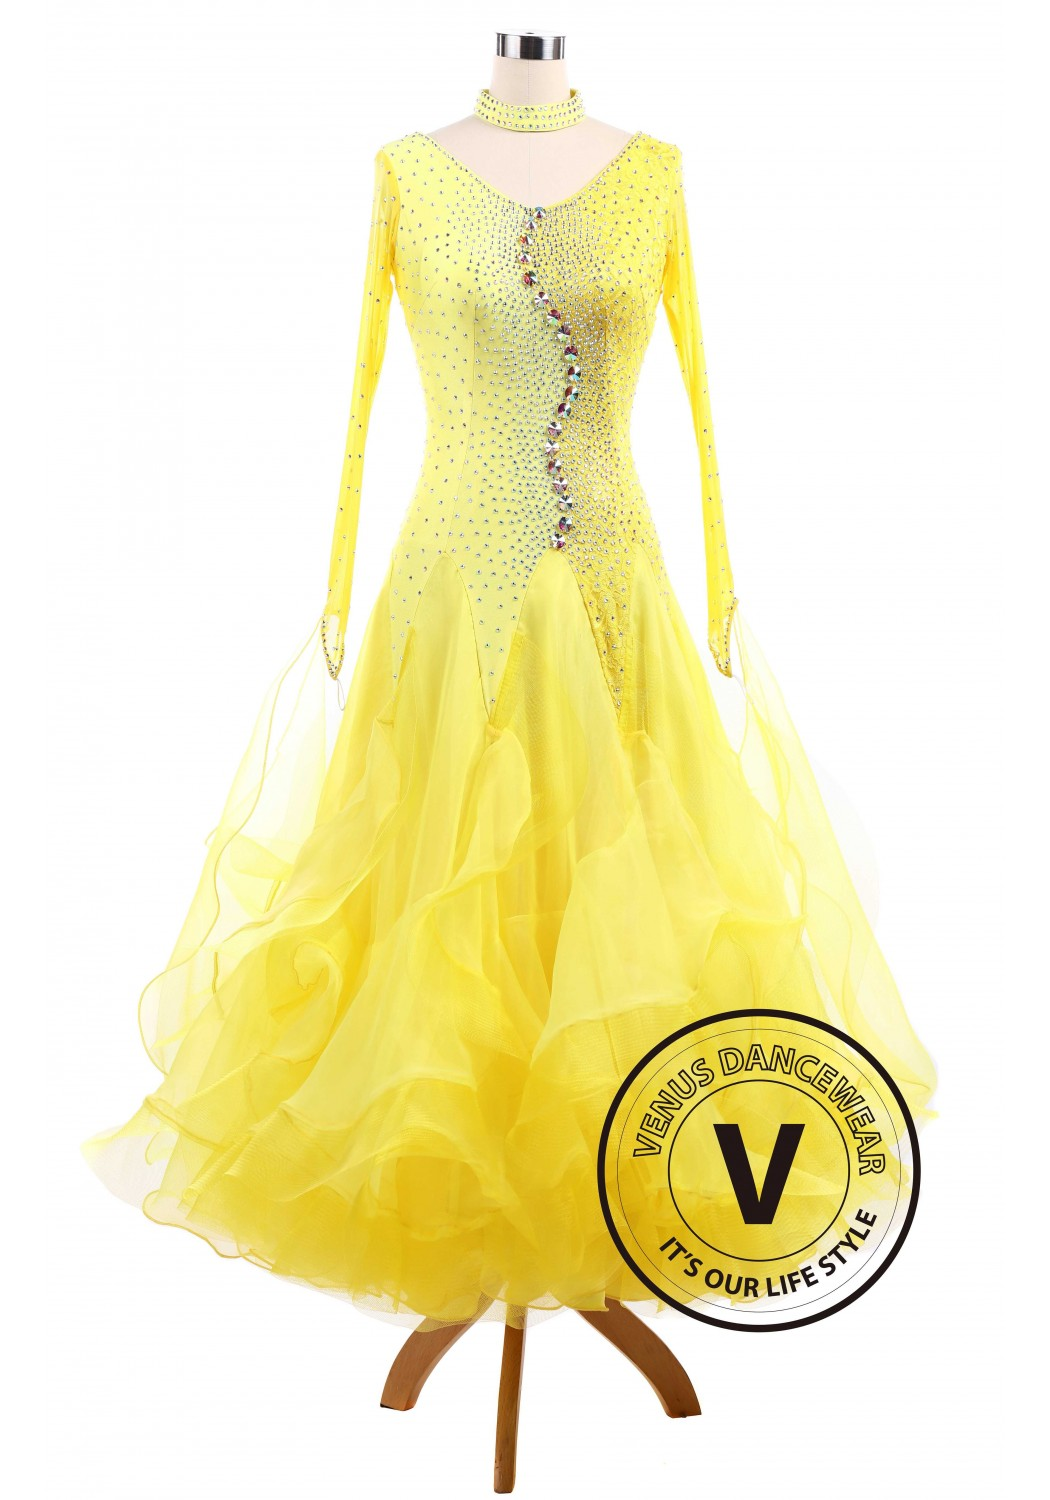 Pure Yellow Standard Ballroom Tango Waltz Smooth Competition Dance Dress